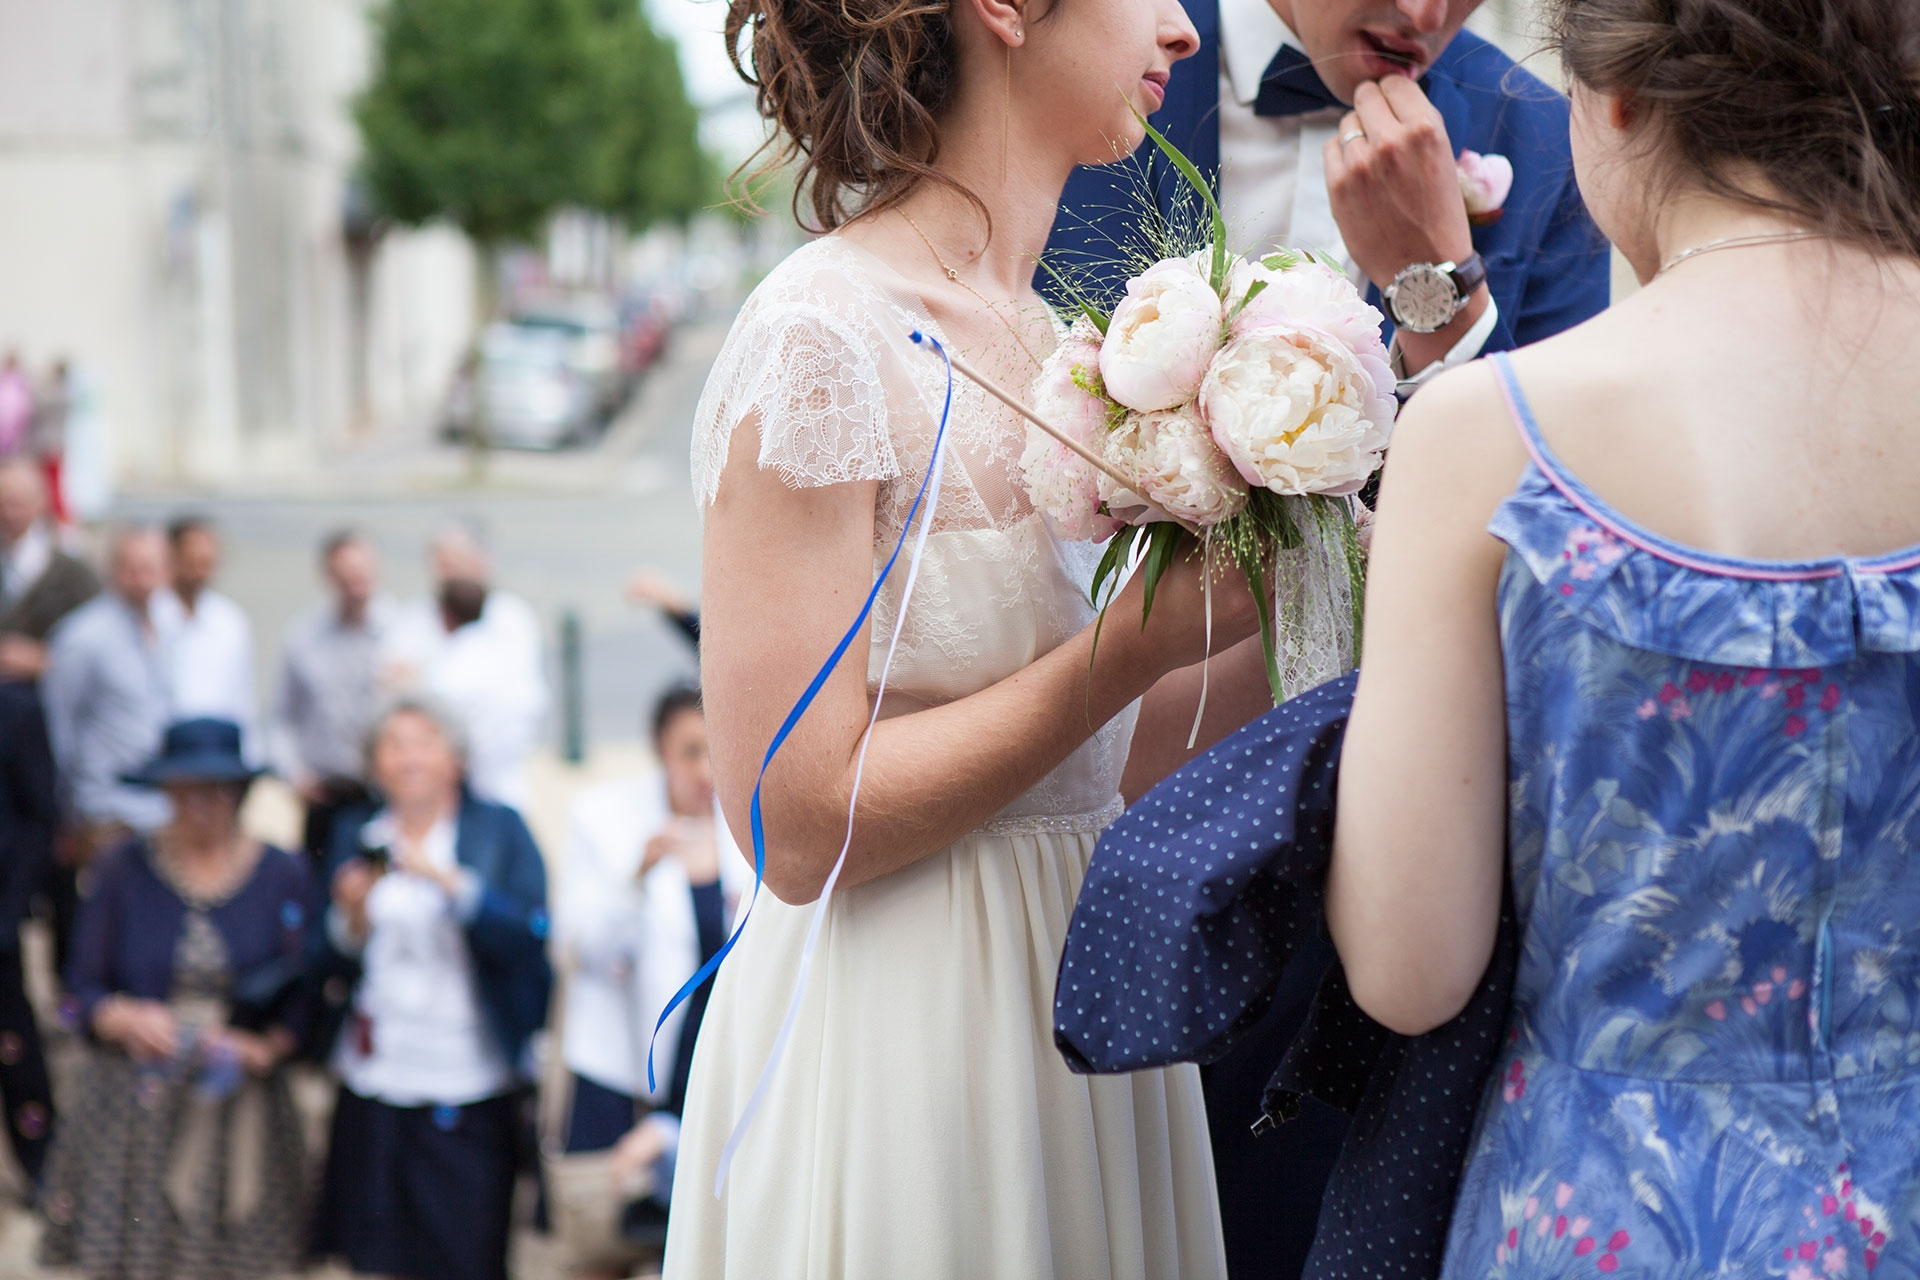 particuliers-evenements-mariages-oui-clementine&alexandre-42